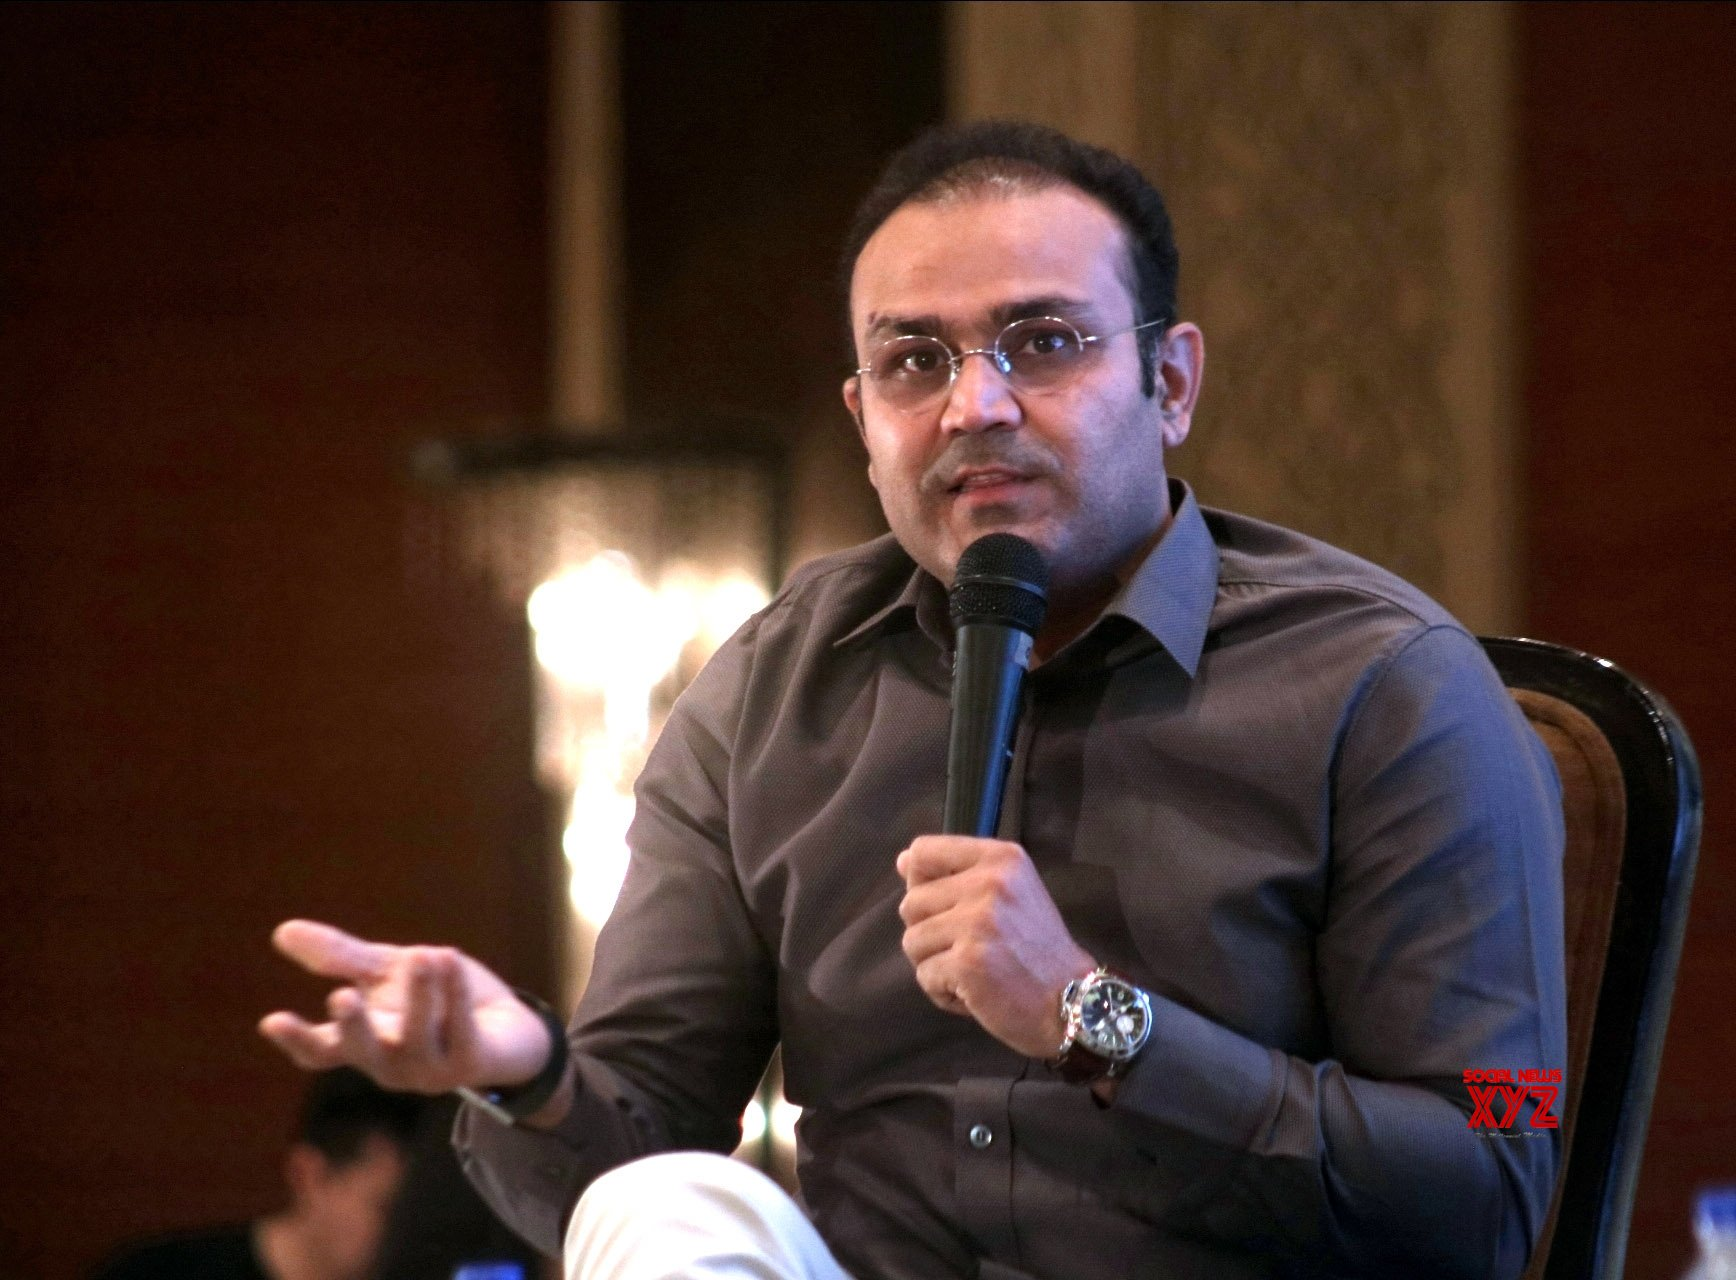 Sehwag joins Kohli and Shastri in backing 5-day Tests